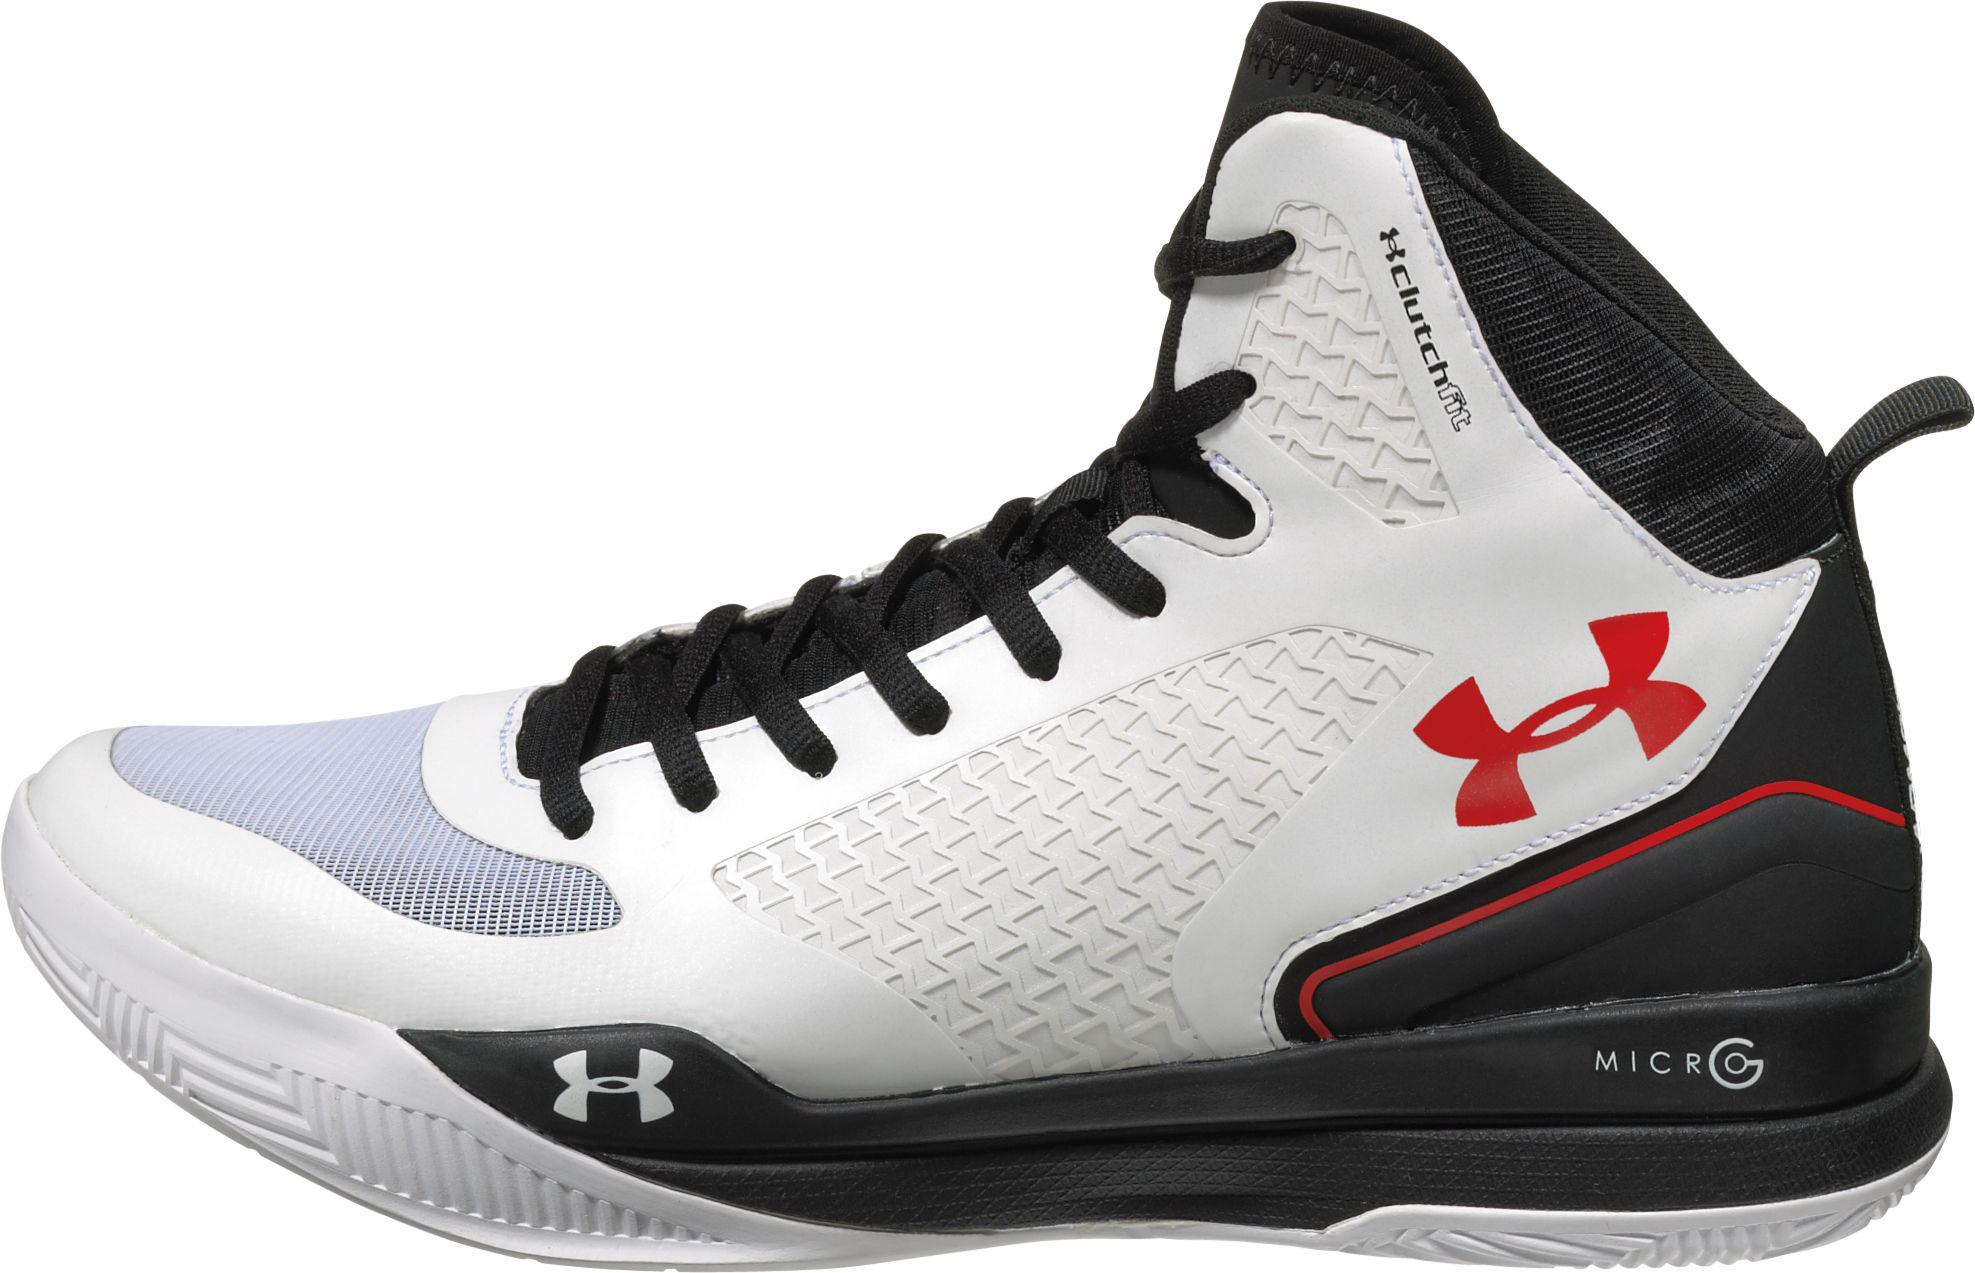 5f28e2ead007 denmark lyst under armour clutchfit lightning basketball shoes in black  67b46 11095